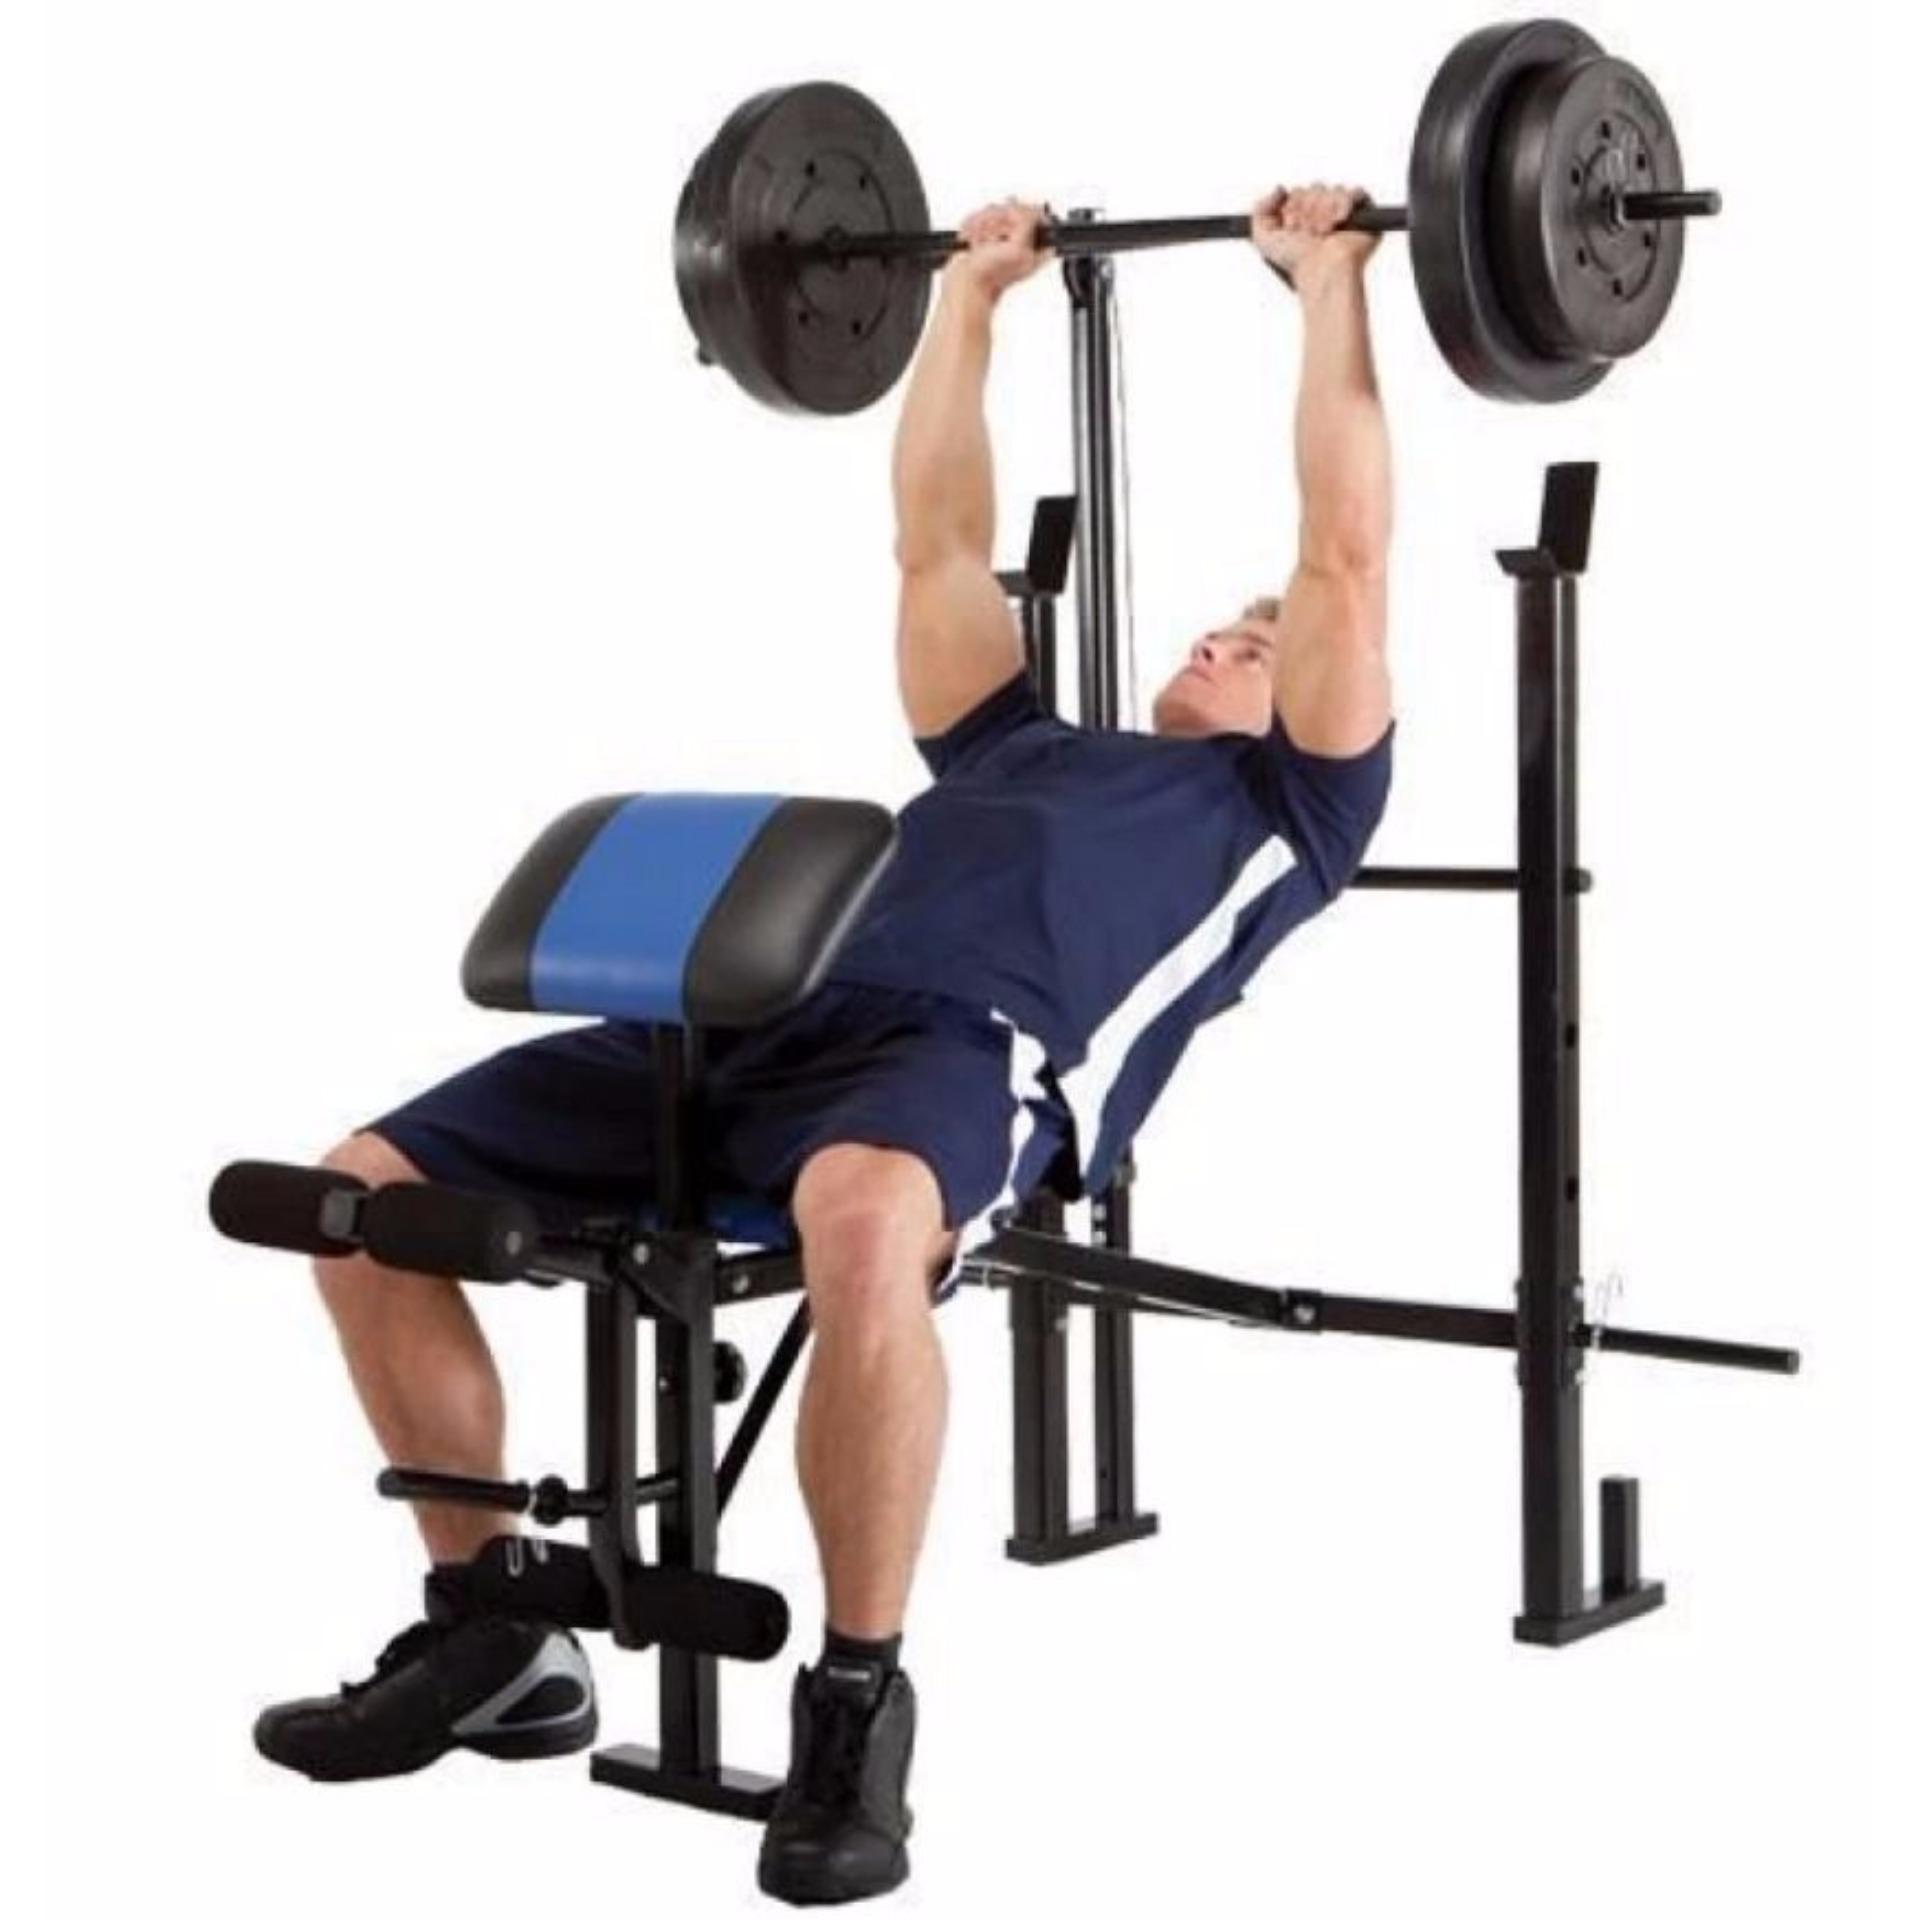 Marcy mcb252 7-in-1 Weight Bench Press